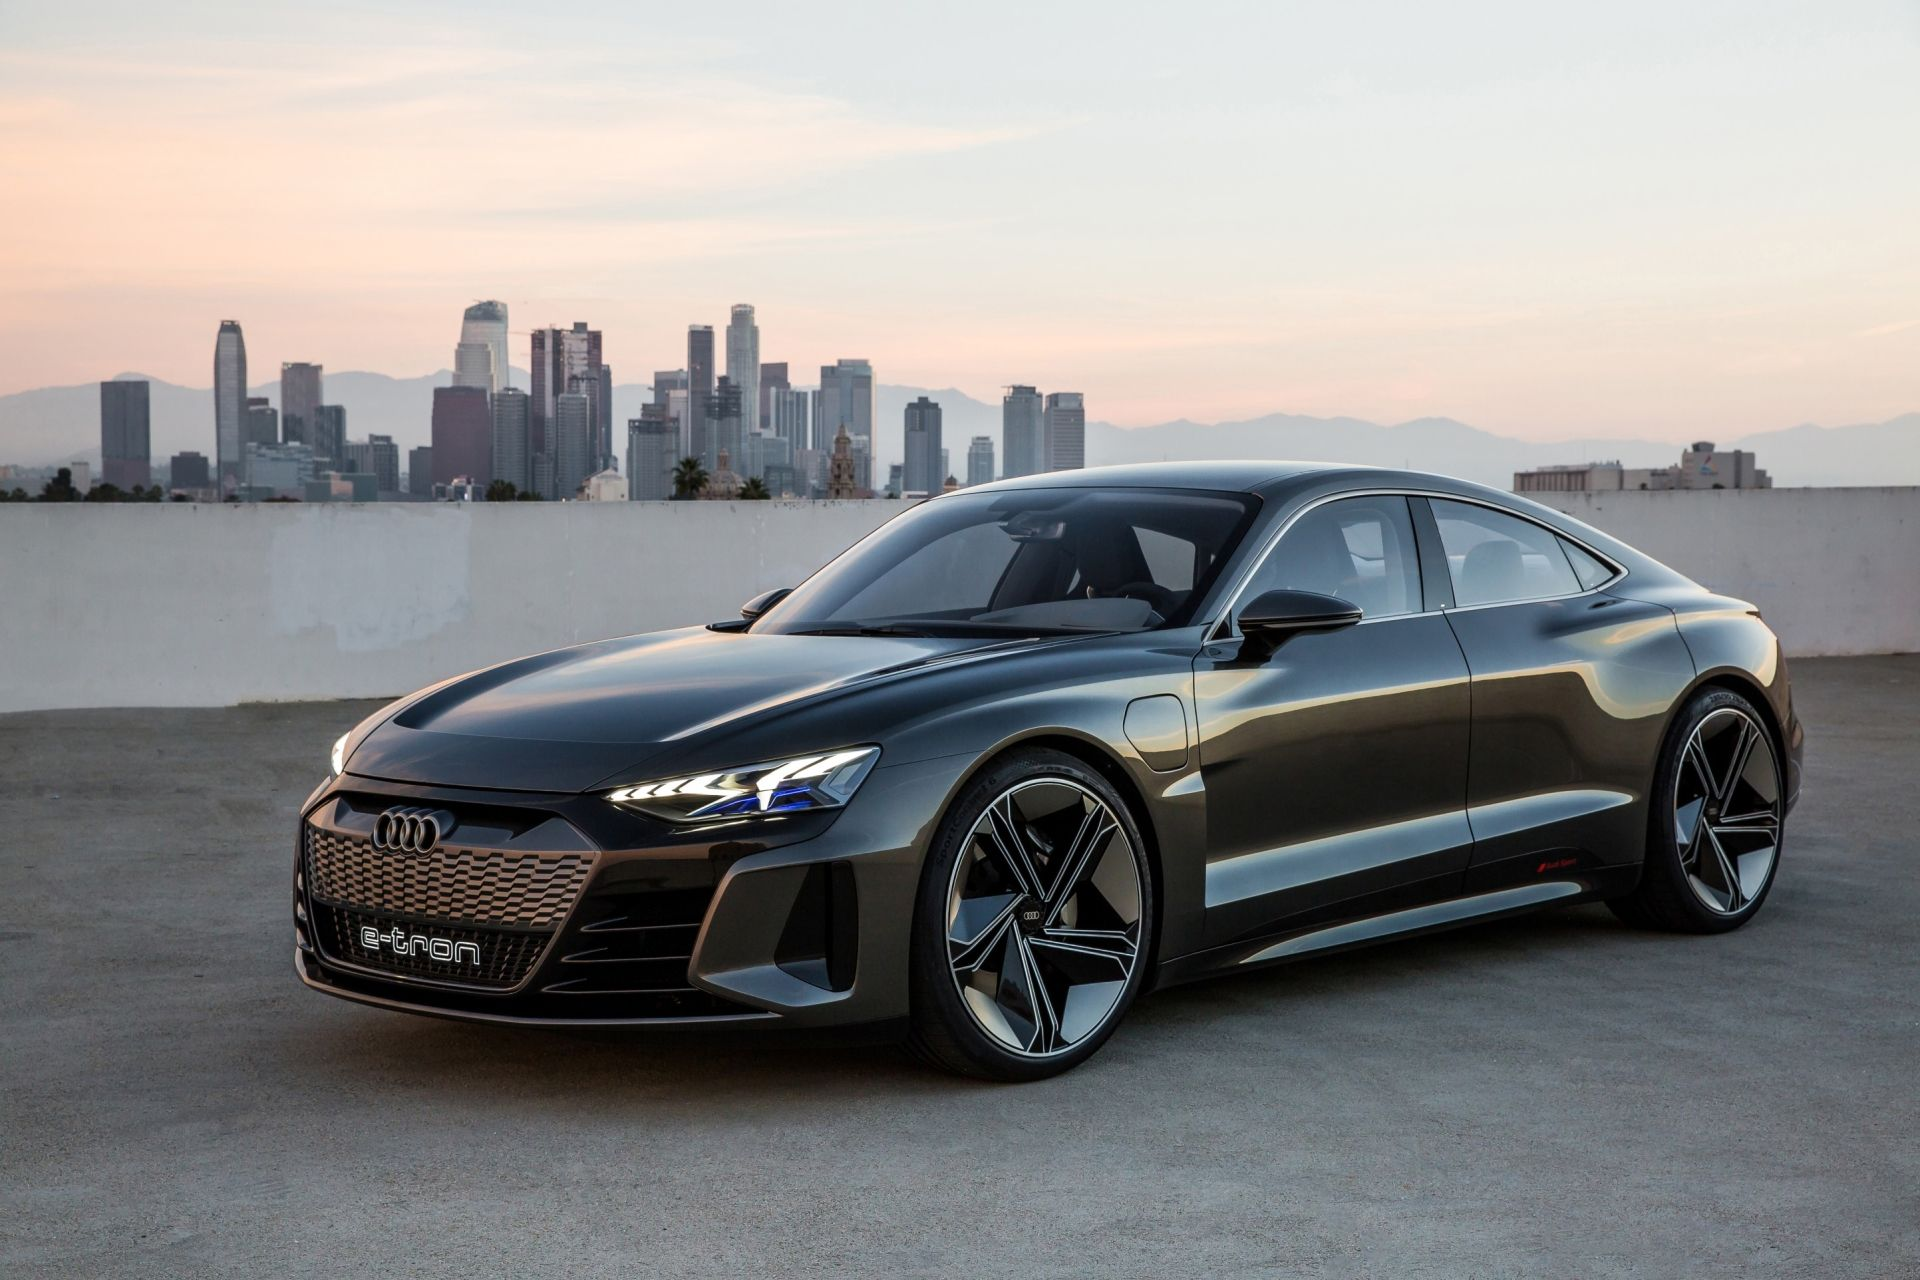 Tony Stark S Vehicle Of Choice The Audi E Tron Gt Philippine Tatler